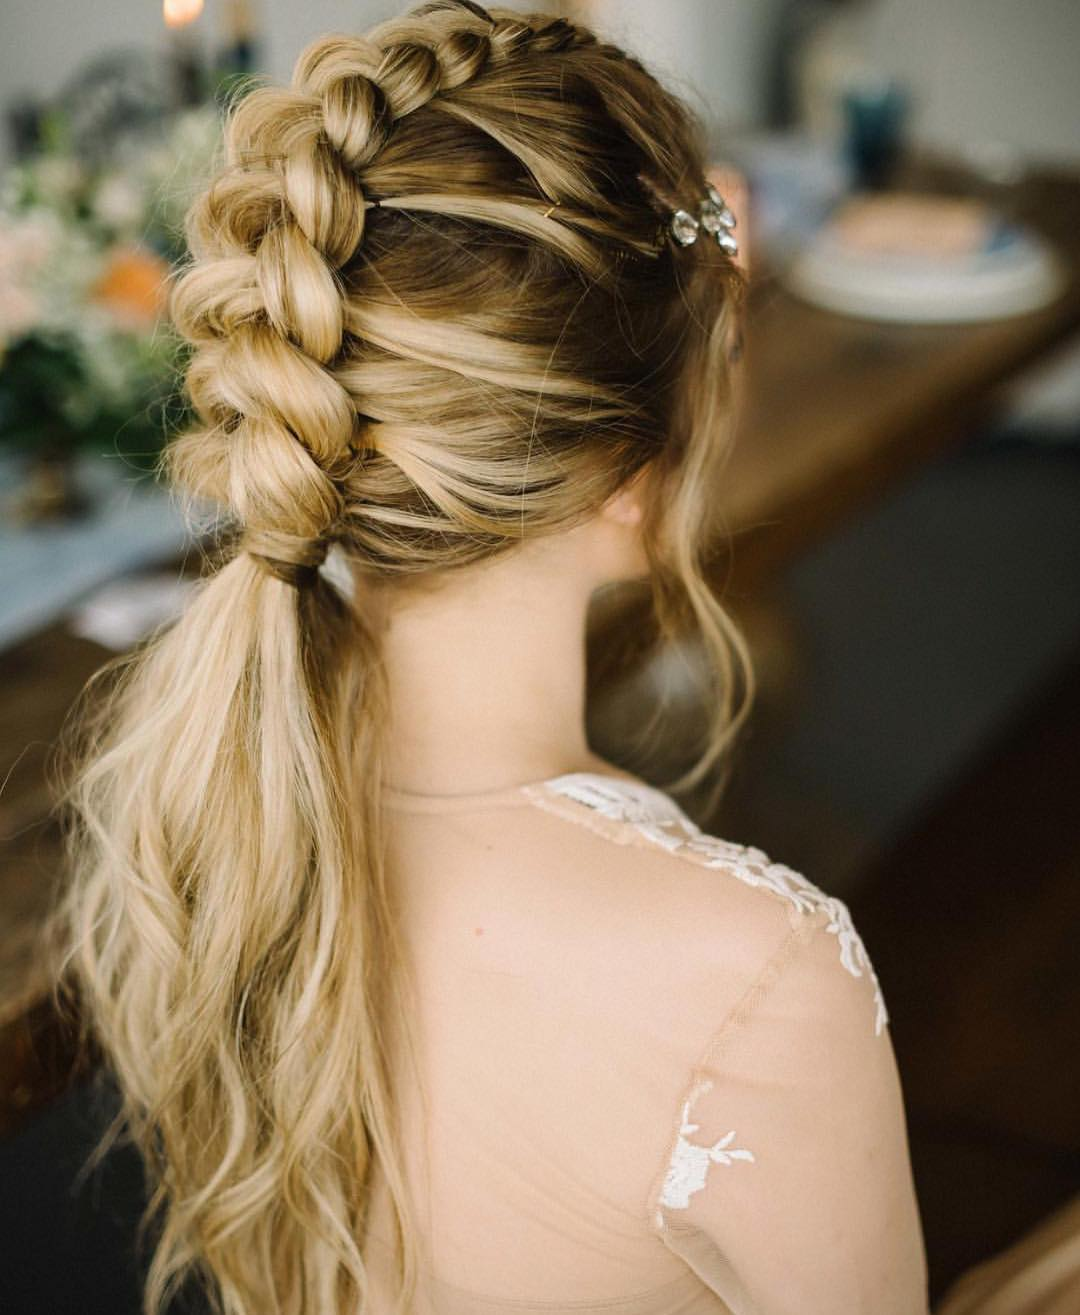 Wedding Hairstyles For Long Hair: 10 Braided Hairstyles For Long Hair